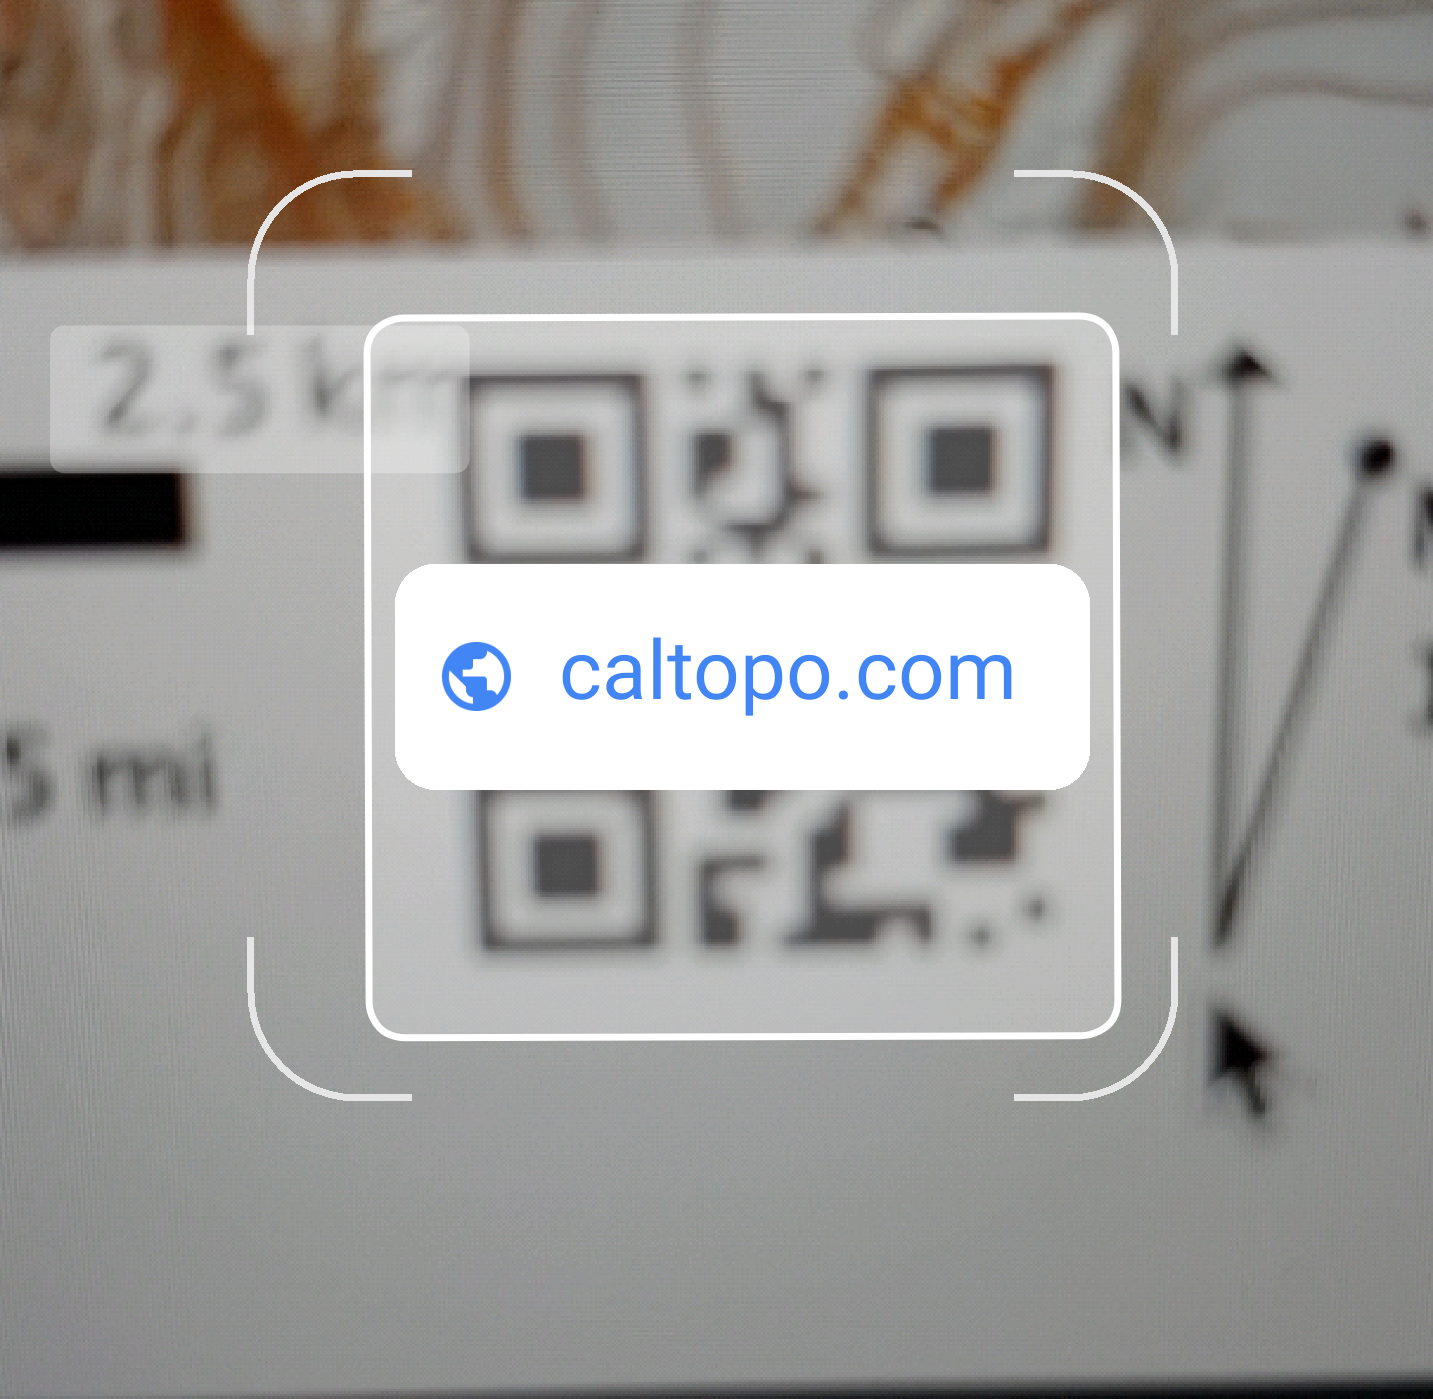 using a mobile device to scan the QR code on a caltopo pdf file. the link goes to caltopo.com